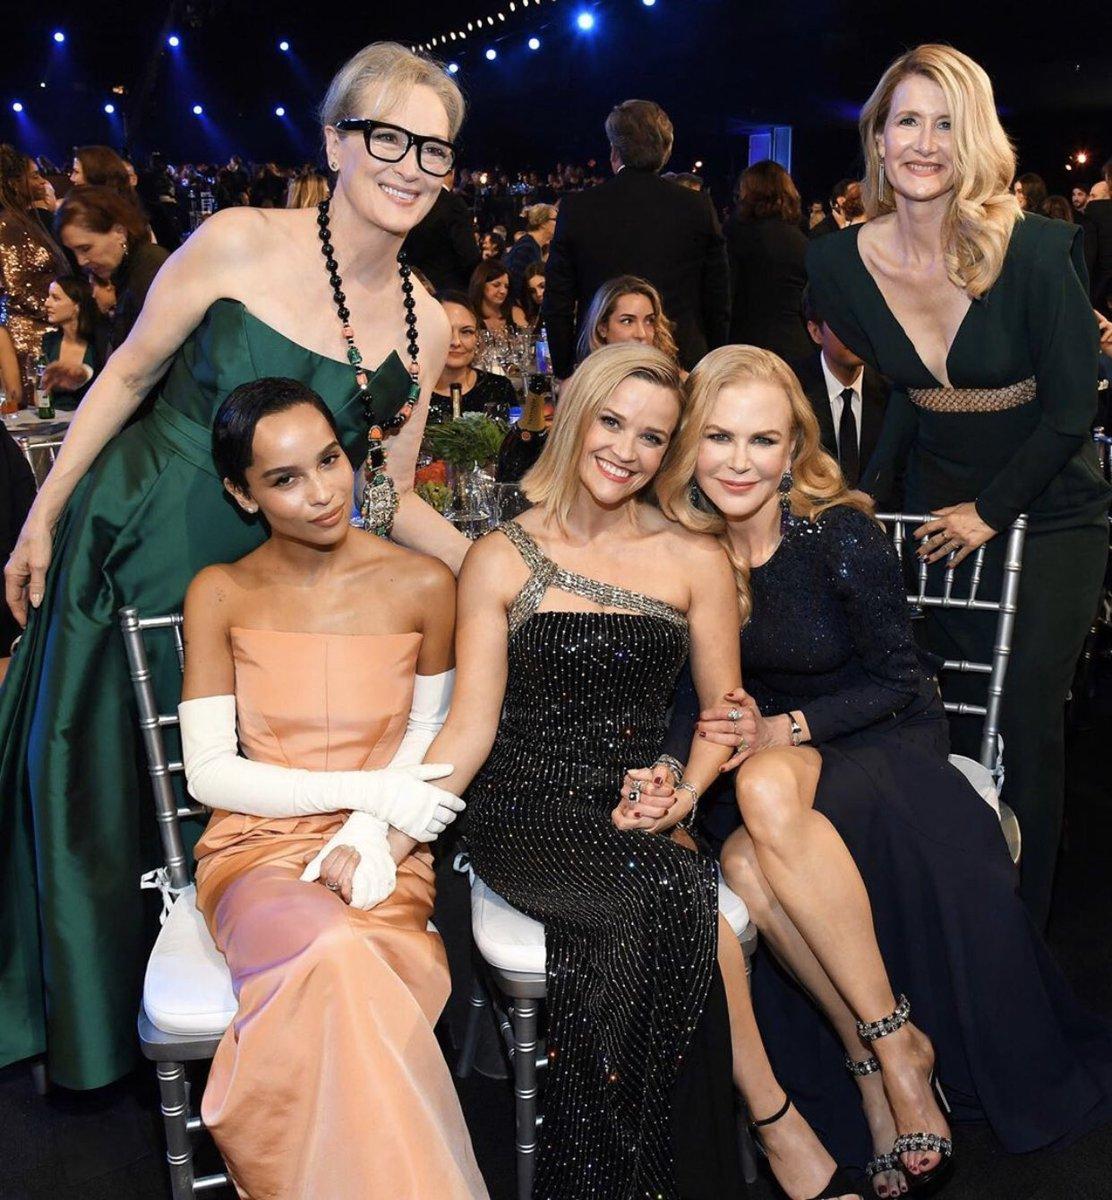 Last night was pure JOY!  I reunited with my #biglittlelies family and celebrated the incredibly well-deserved recognitions of some of my dearest friends and coworkers. Bravo to all the amazing actors... thank you for sharing your talents with the world! #sagawards<br>http://pic.twitter.com/sOa7SEg7x9